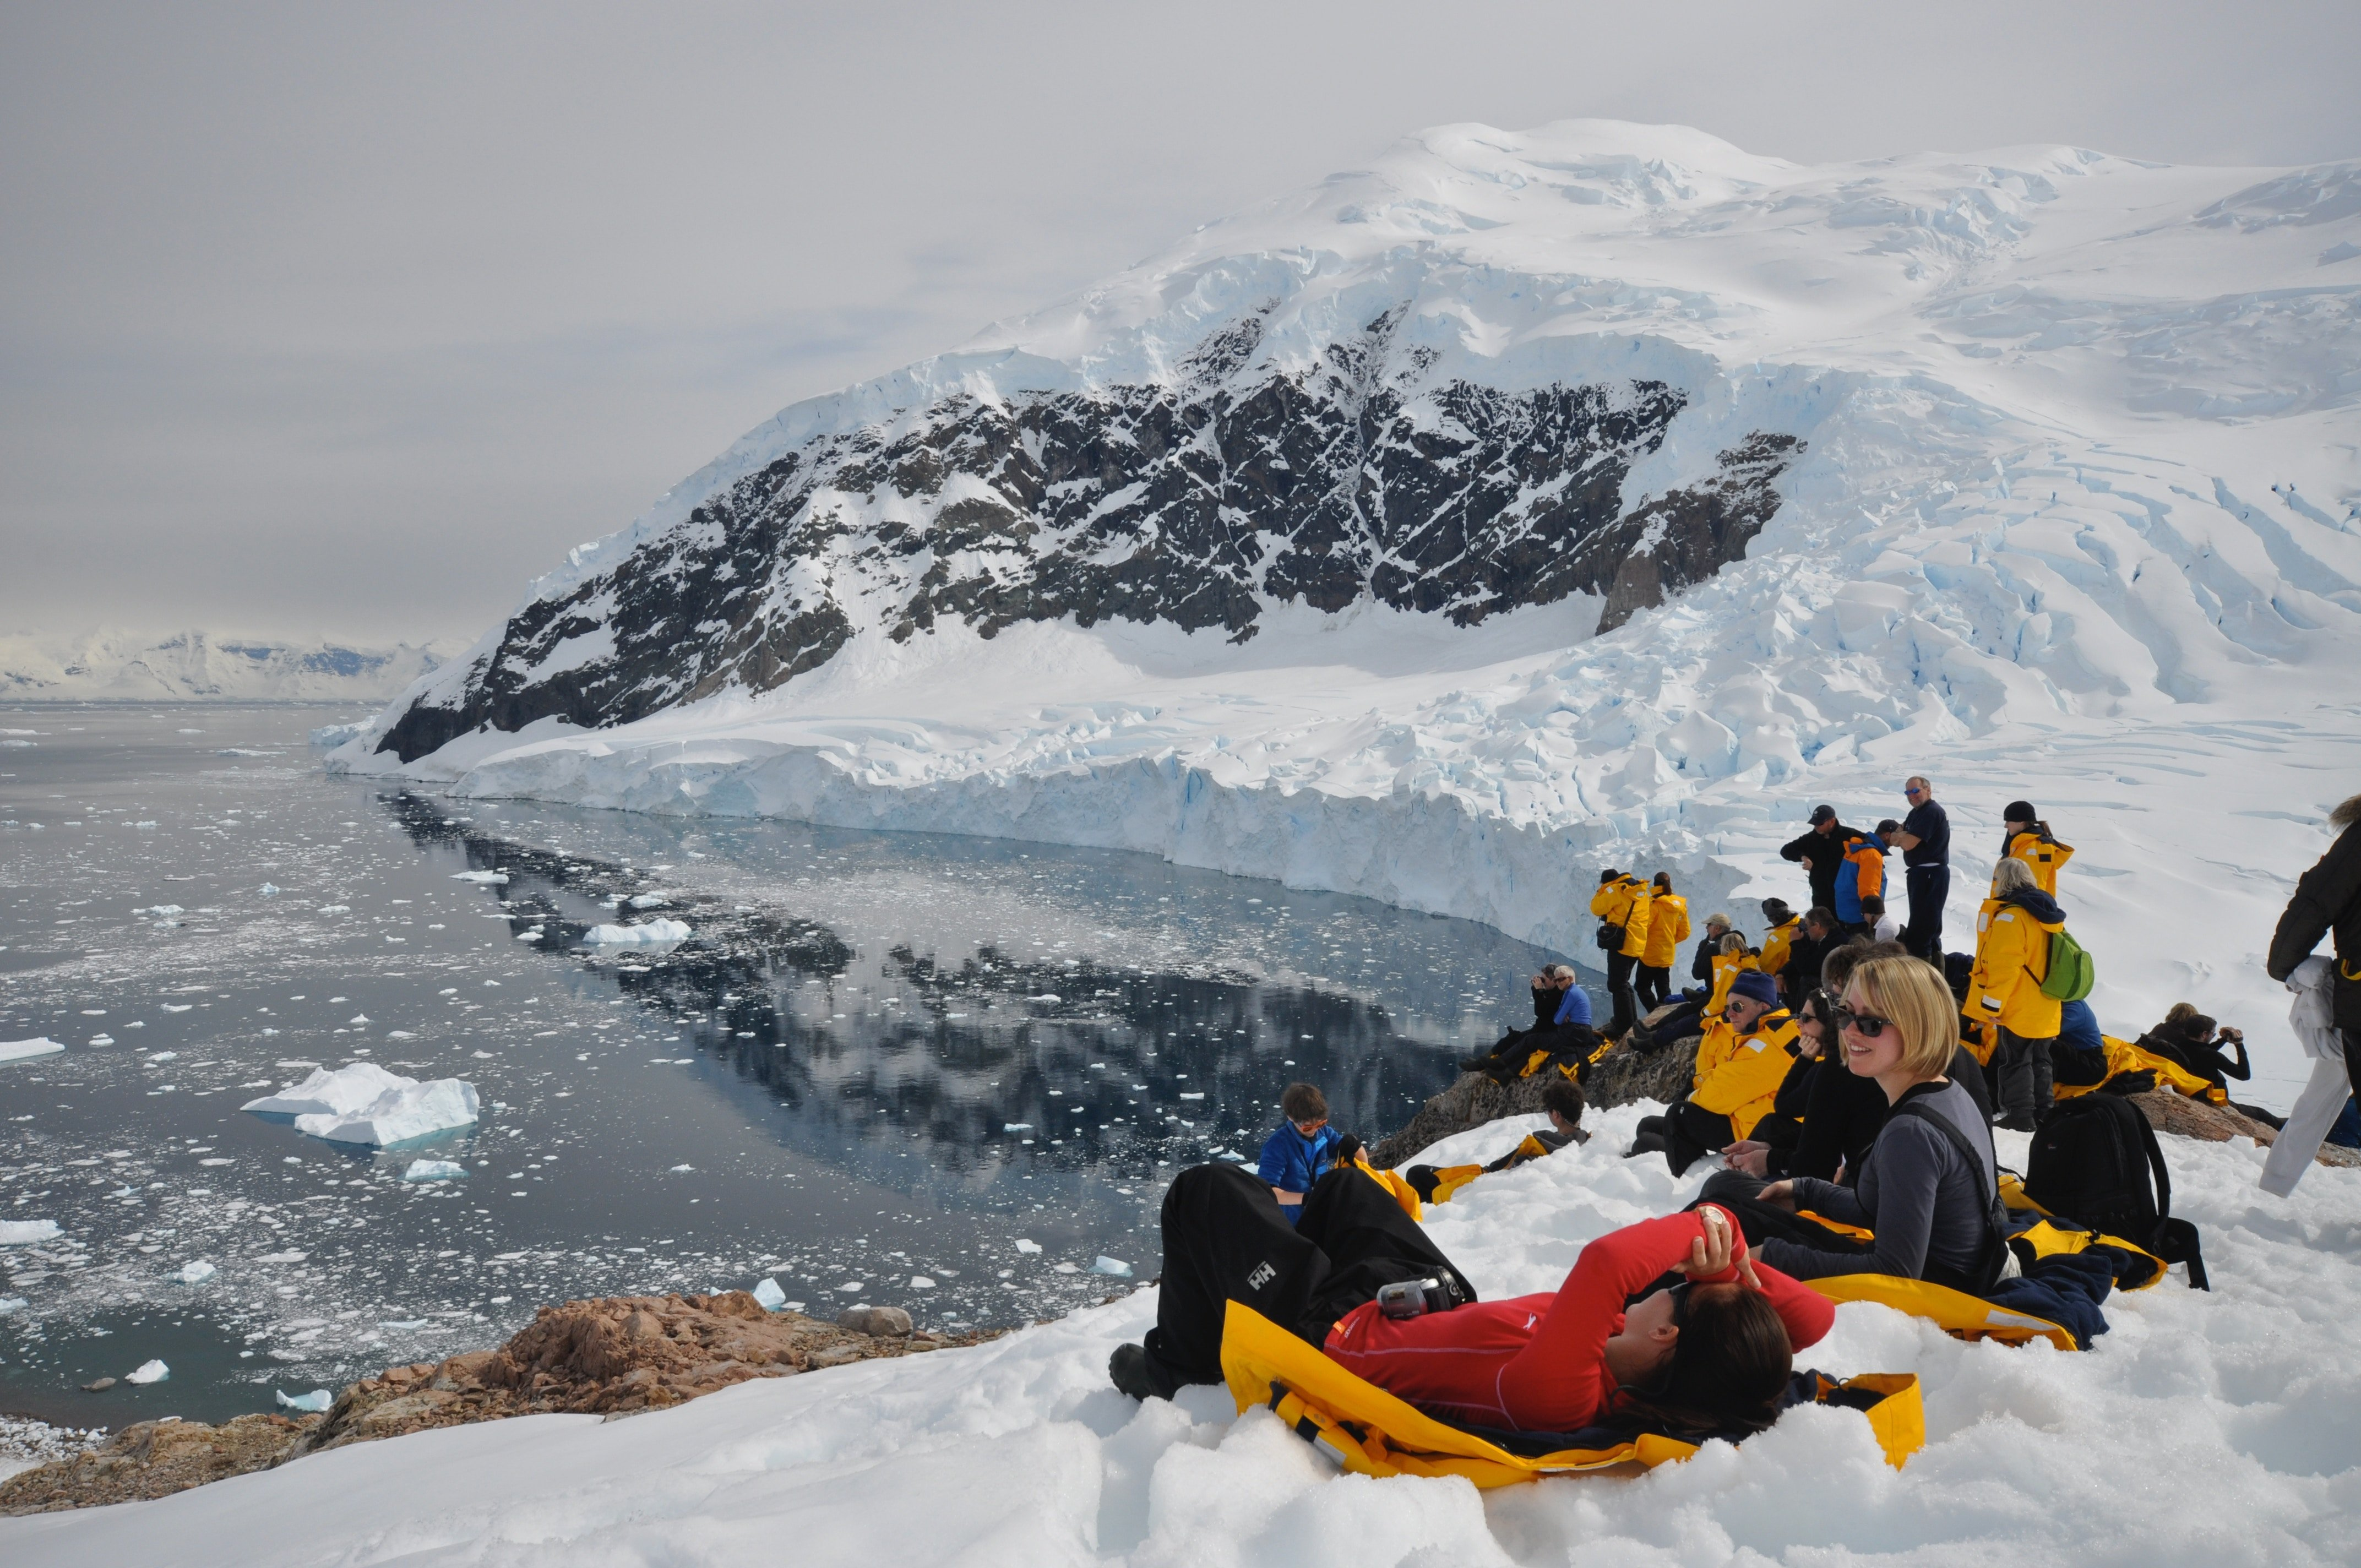 Expedition to antarctica - passengers relaxing on glaciers! a bucket list place for 2019!